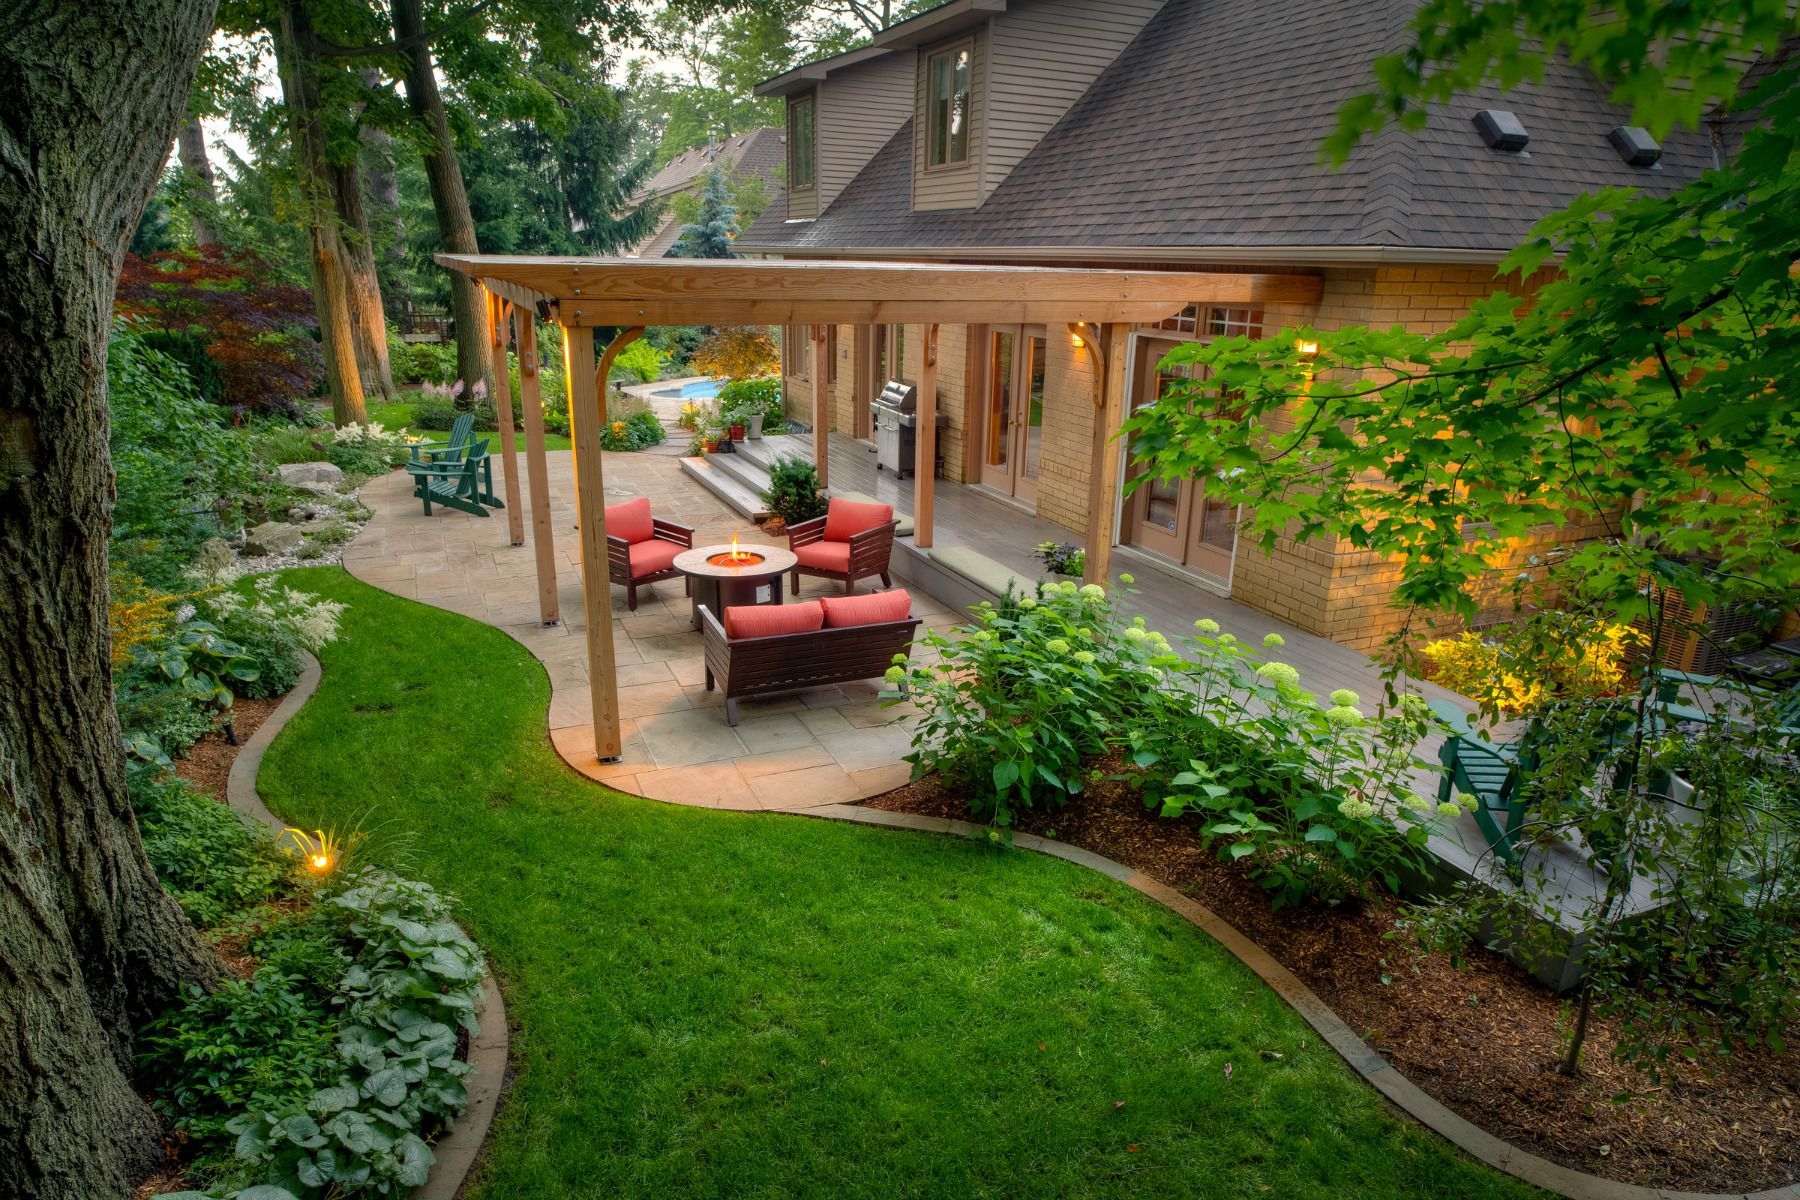 3 Things To Consider When Landscaping Around Your Home